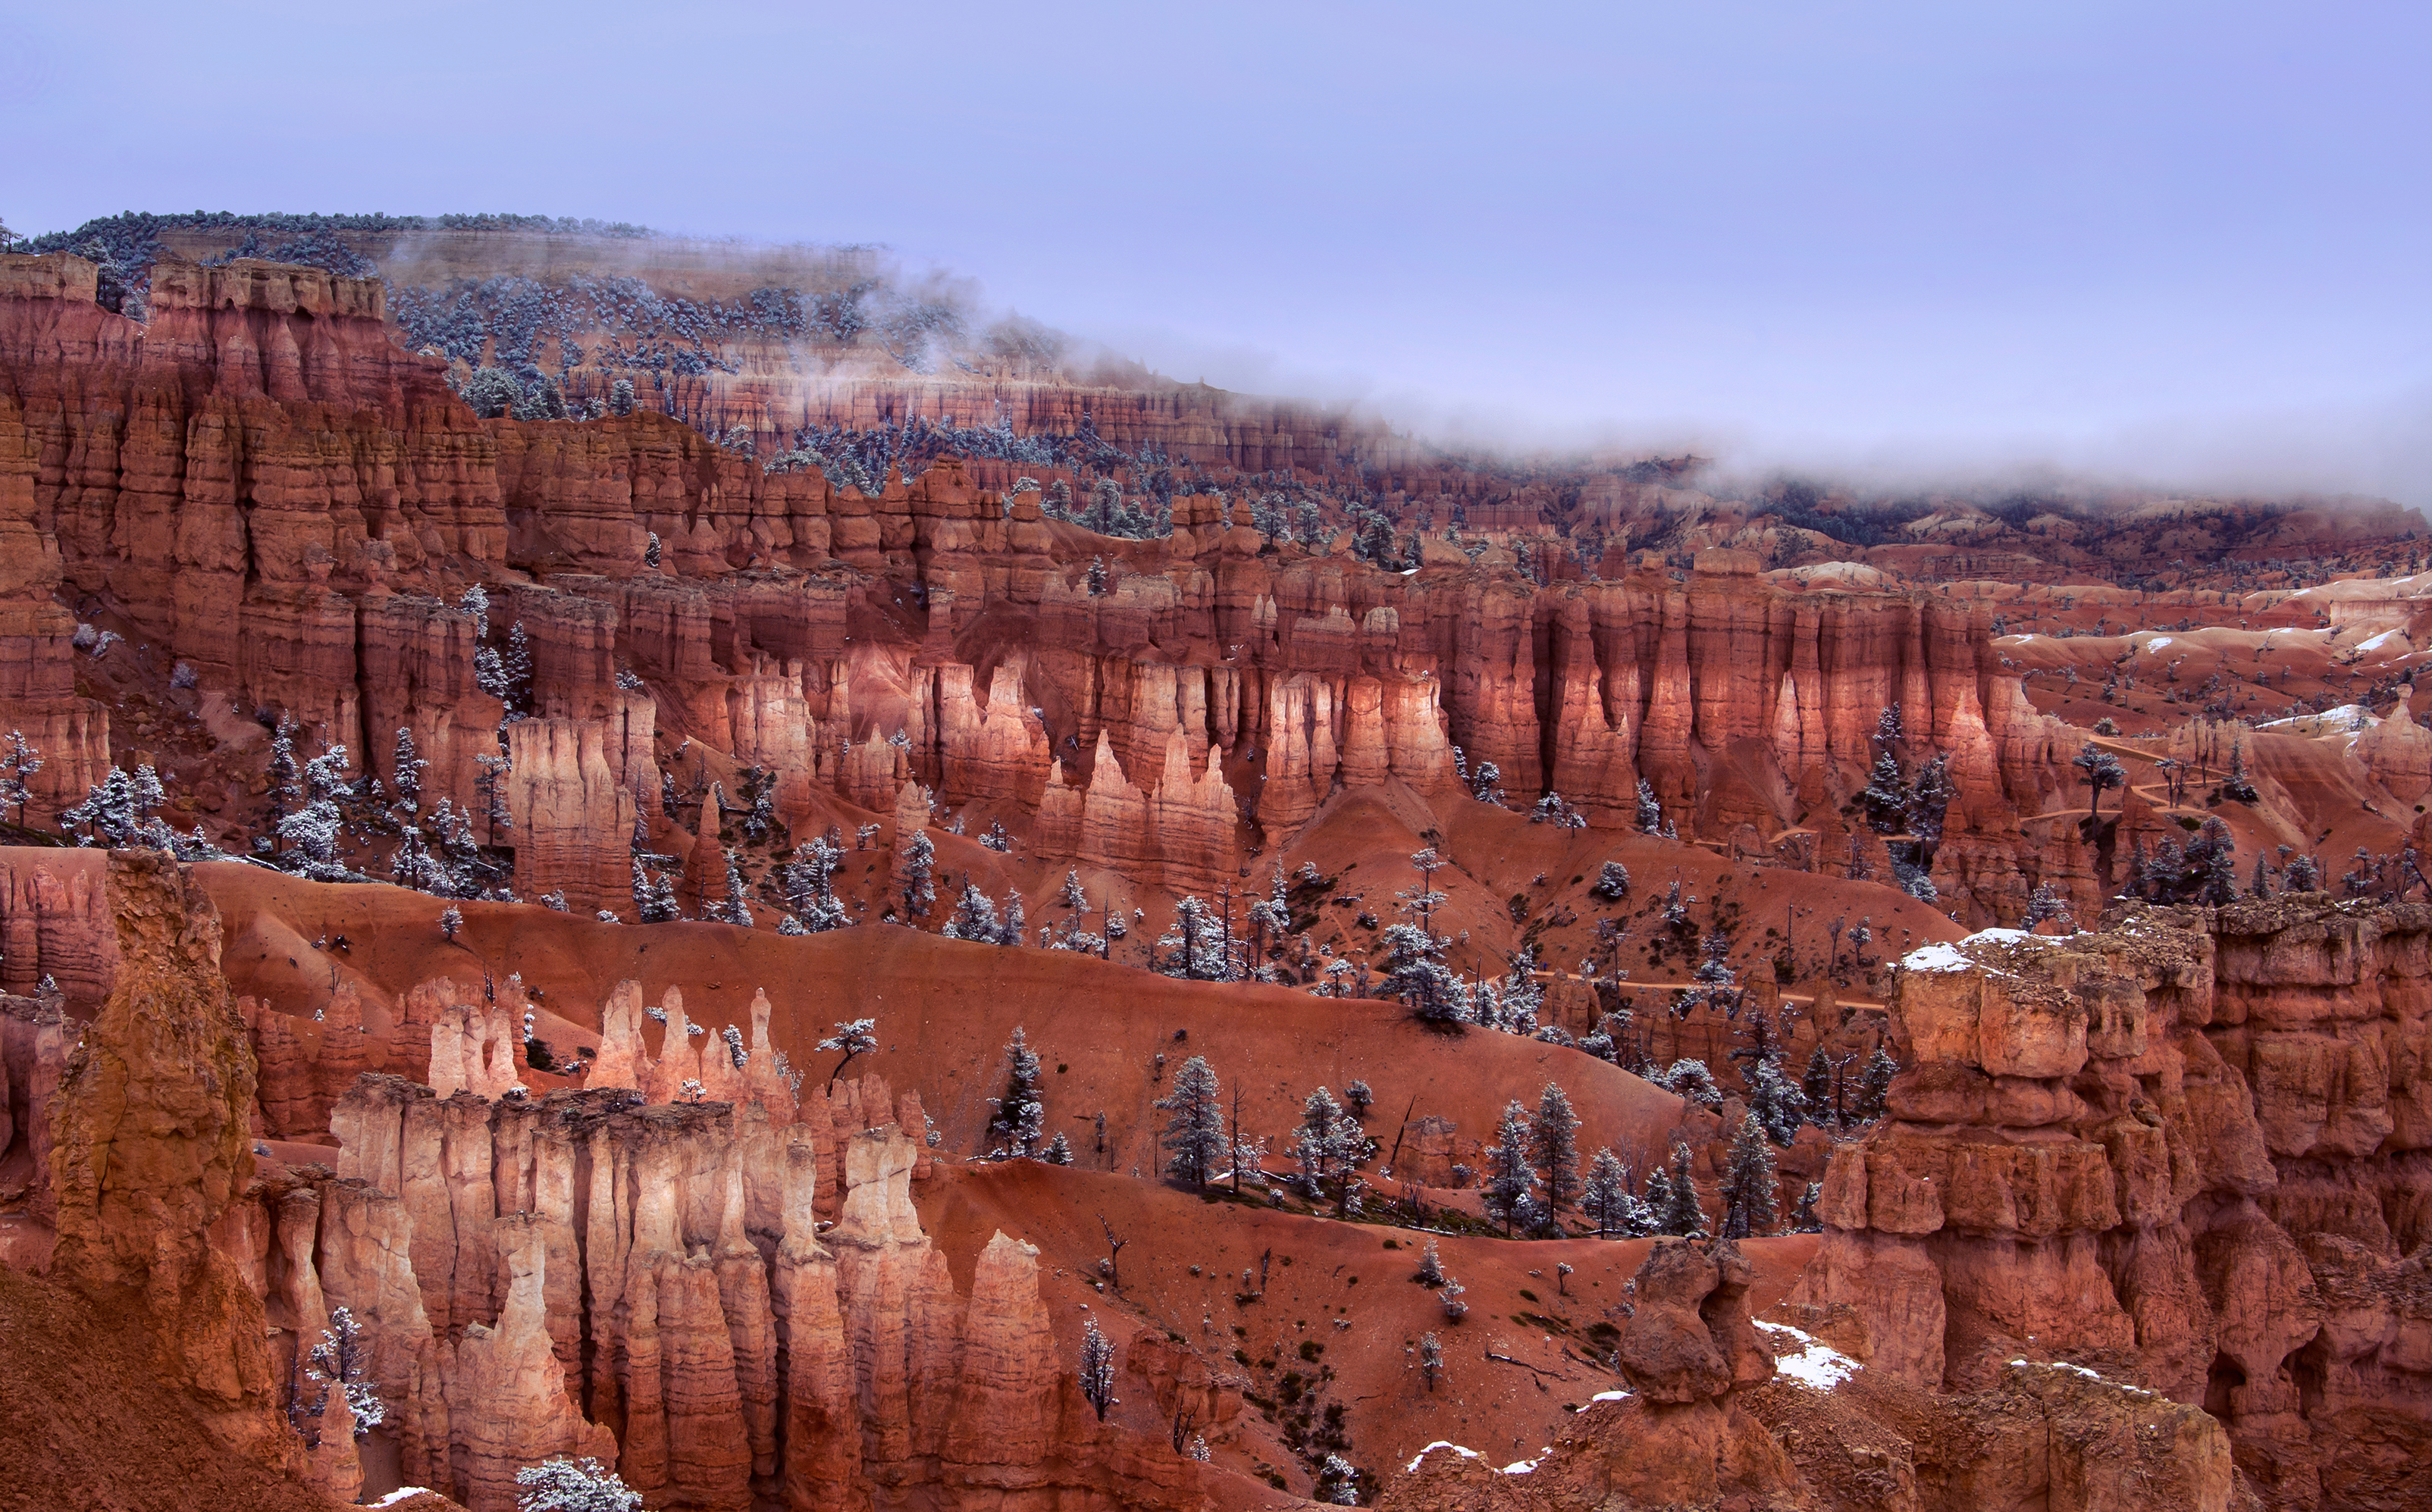 Inspiration Point - A Hoodoo Landscape